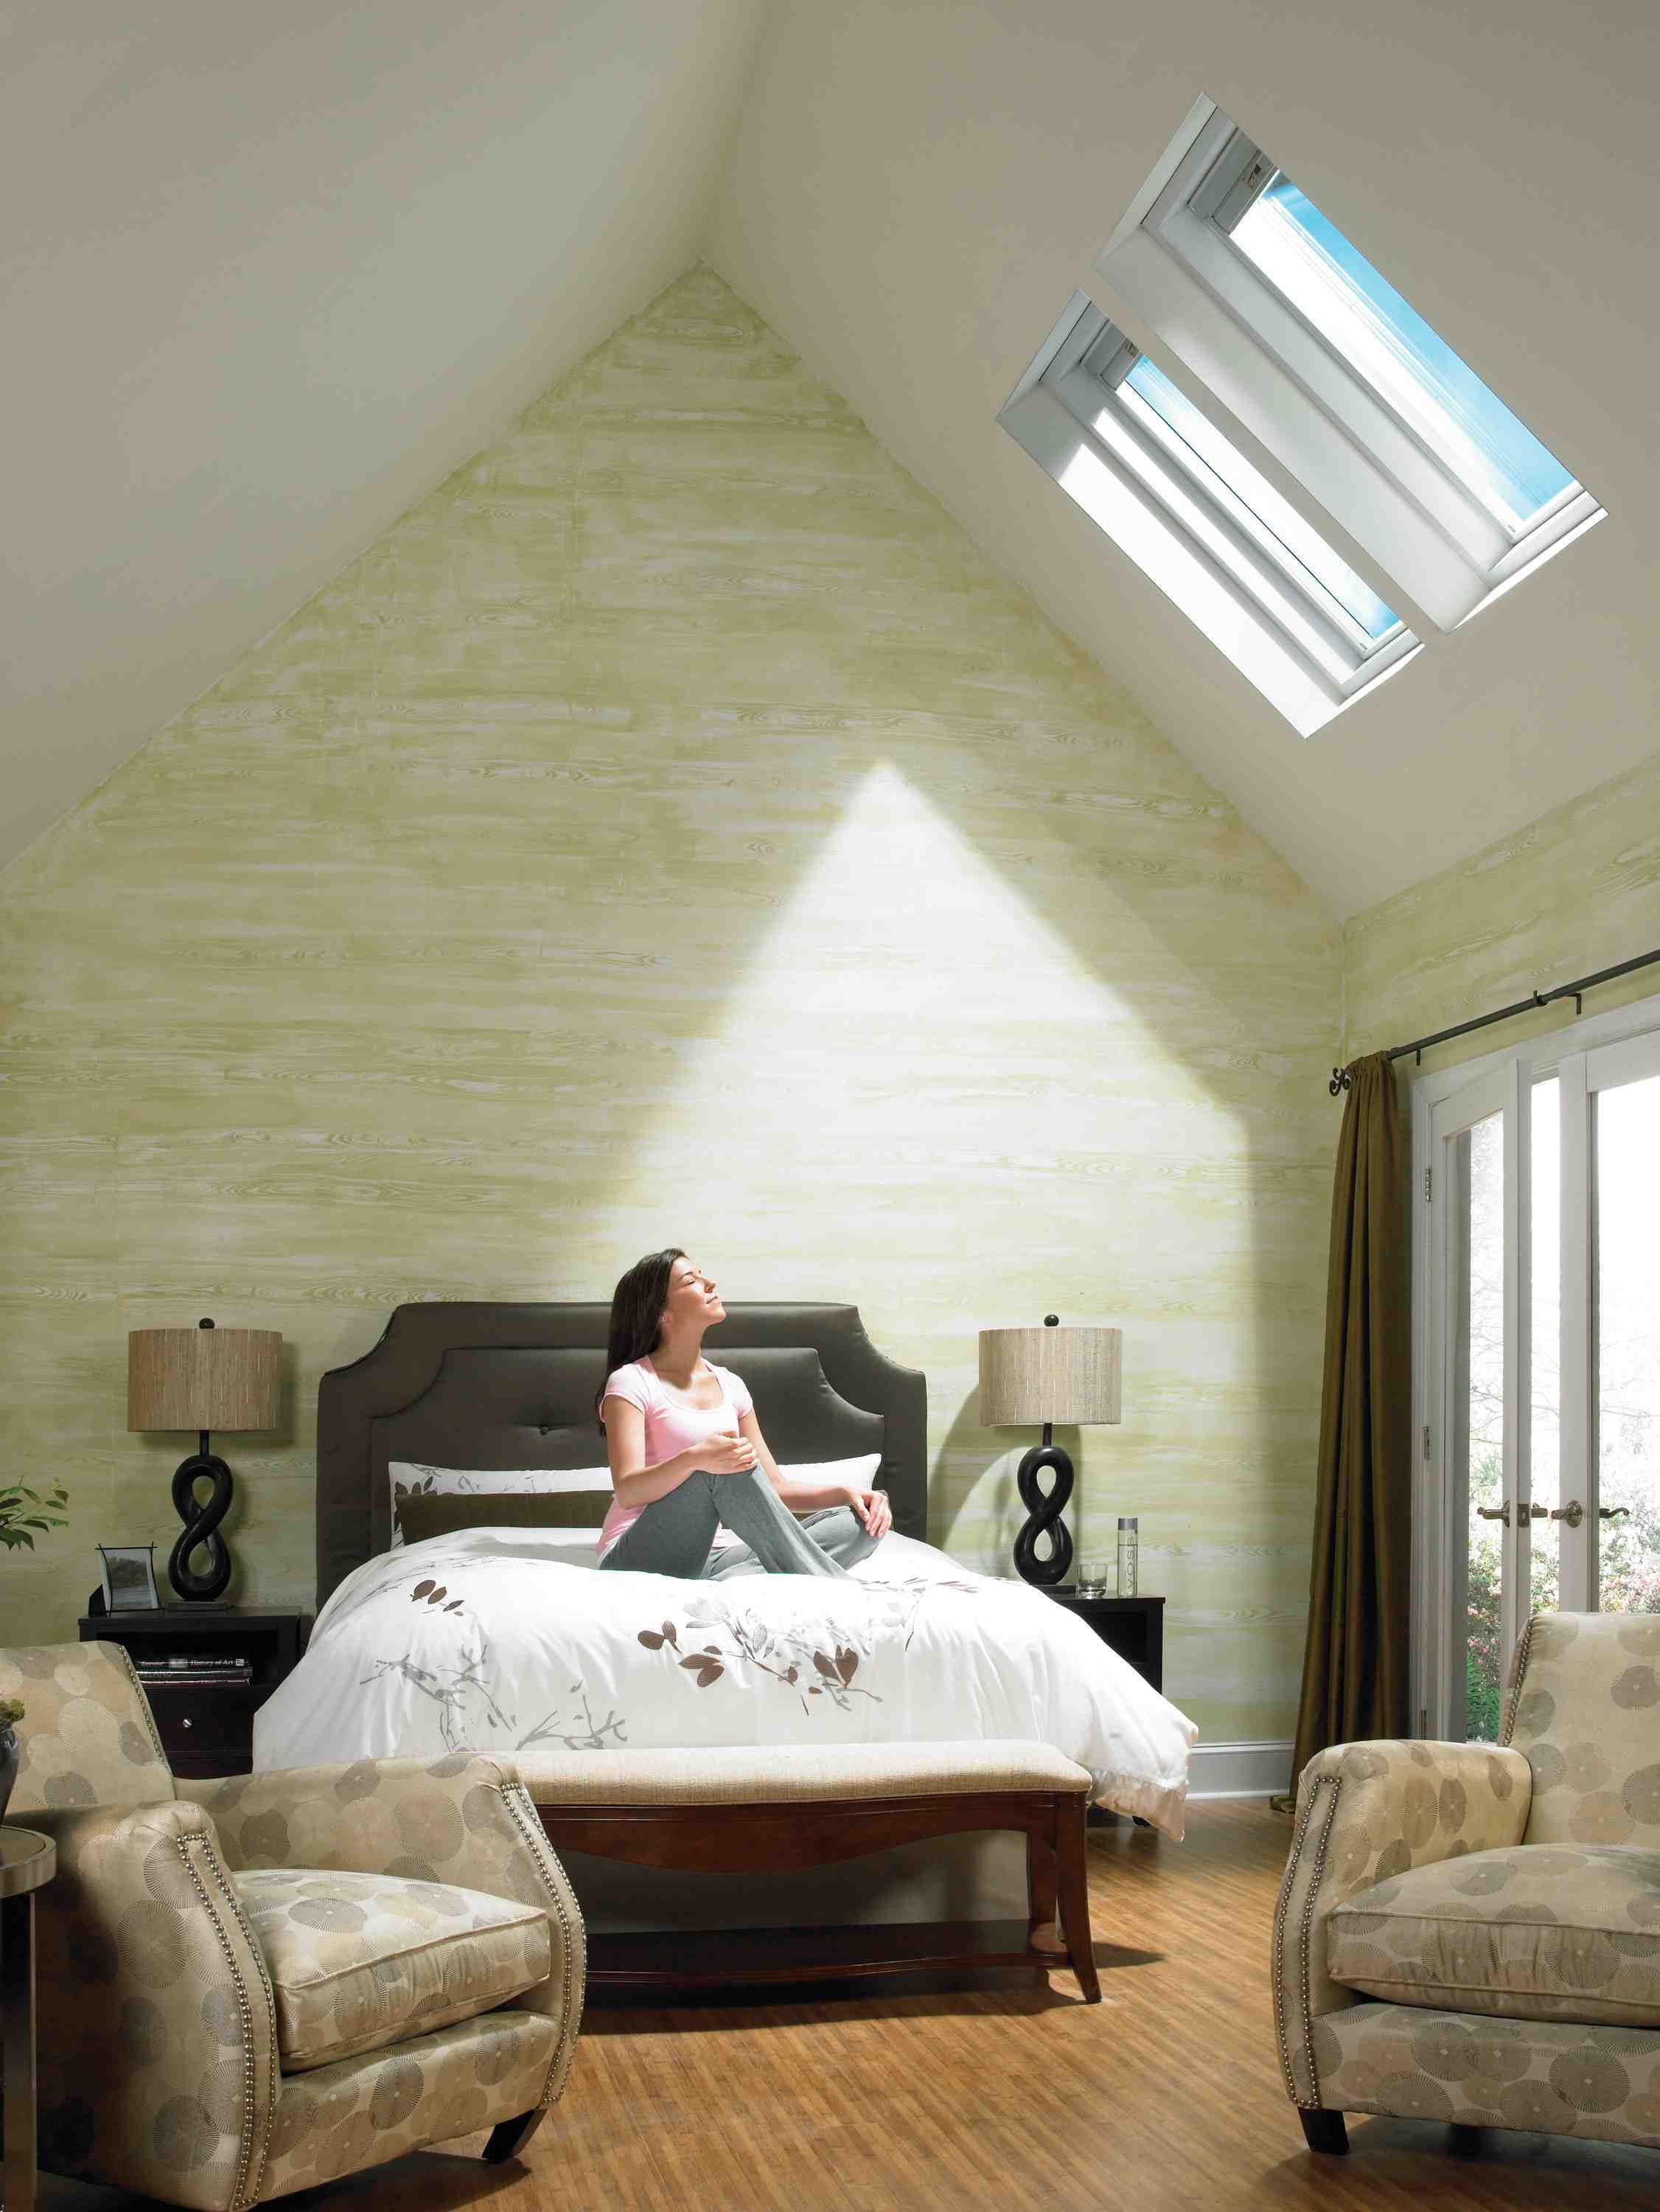 bedroom lighting solutions. Living Room For Sunlight Attic Bedroom Interior Inspiration Lighting Glorious Double Fixed Velux Skylights Solutions